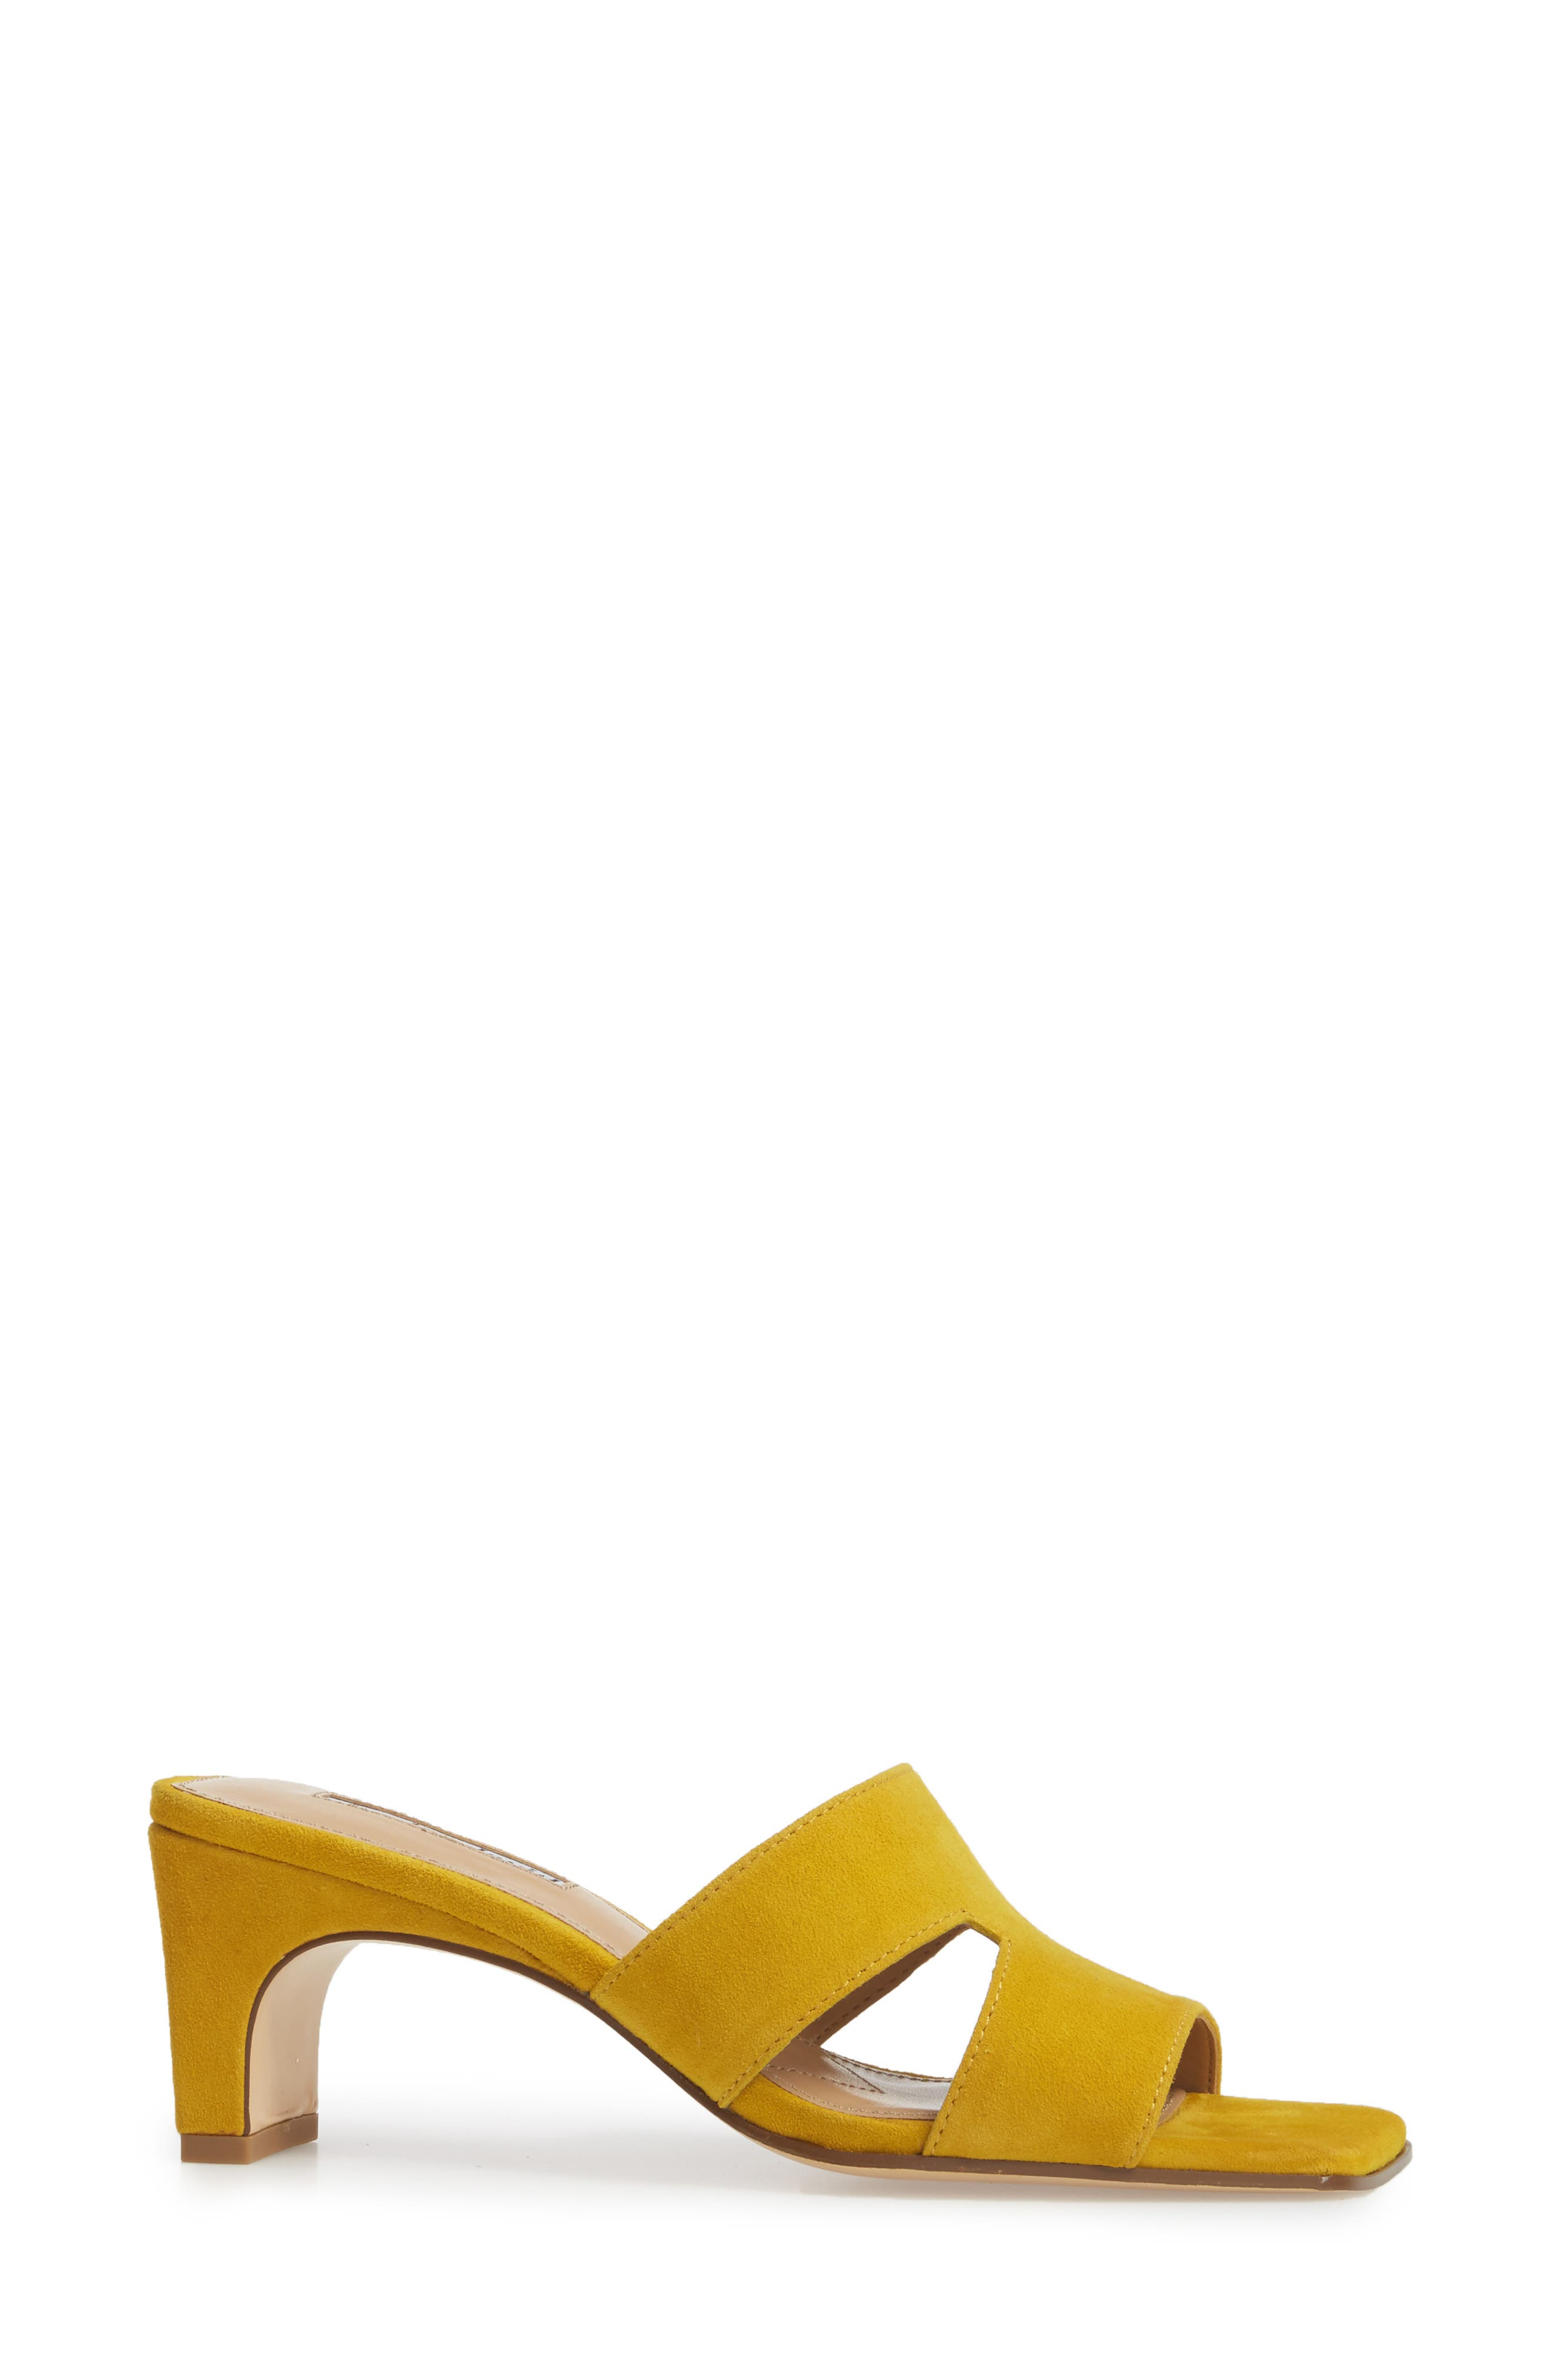 Harley Slide Sandal,                             Alternate thumbnail 3, color,                             Bright Yellow Suede